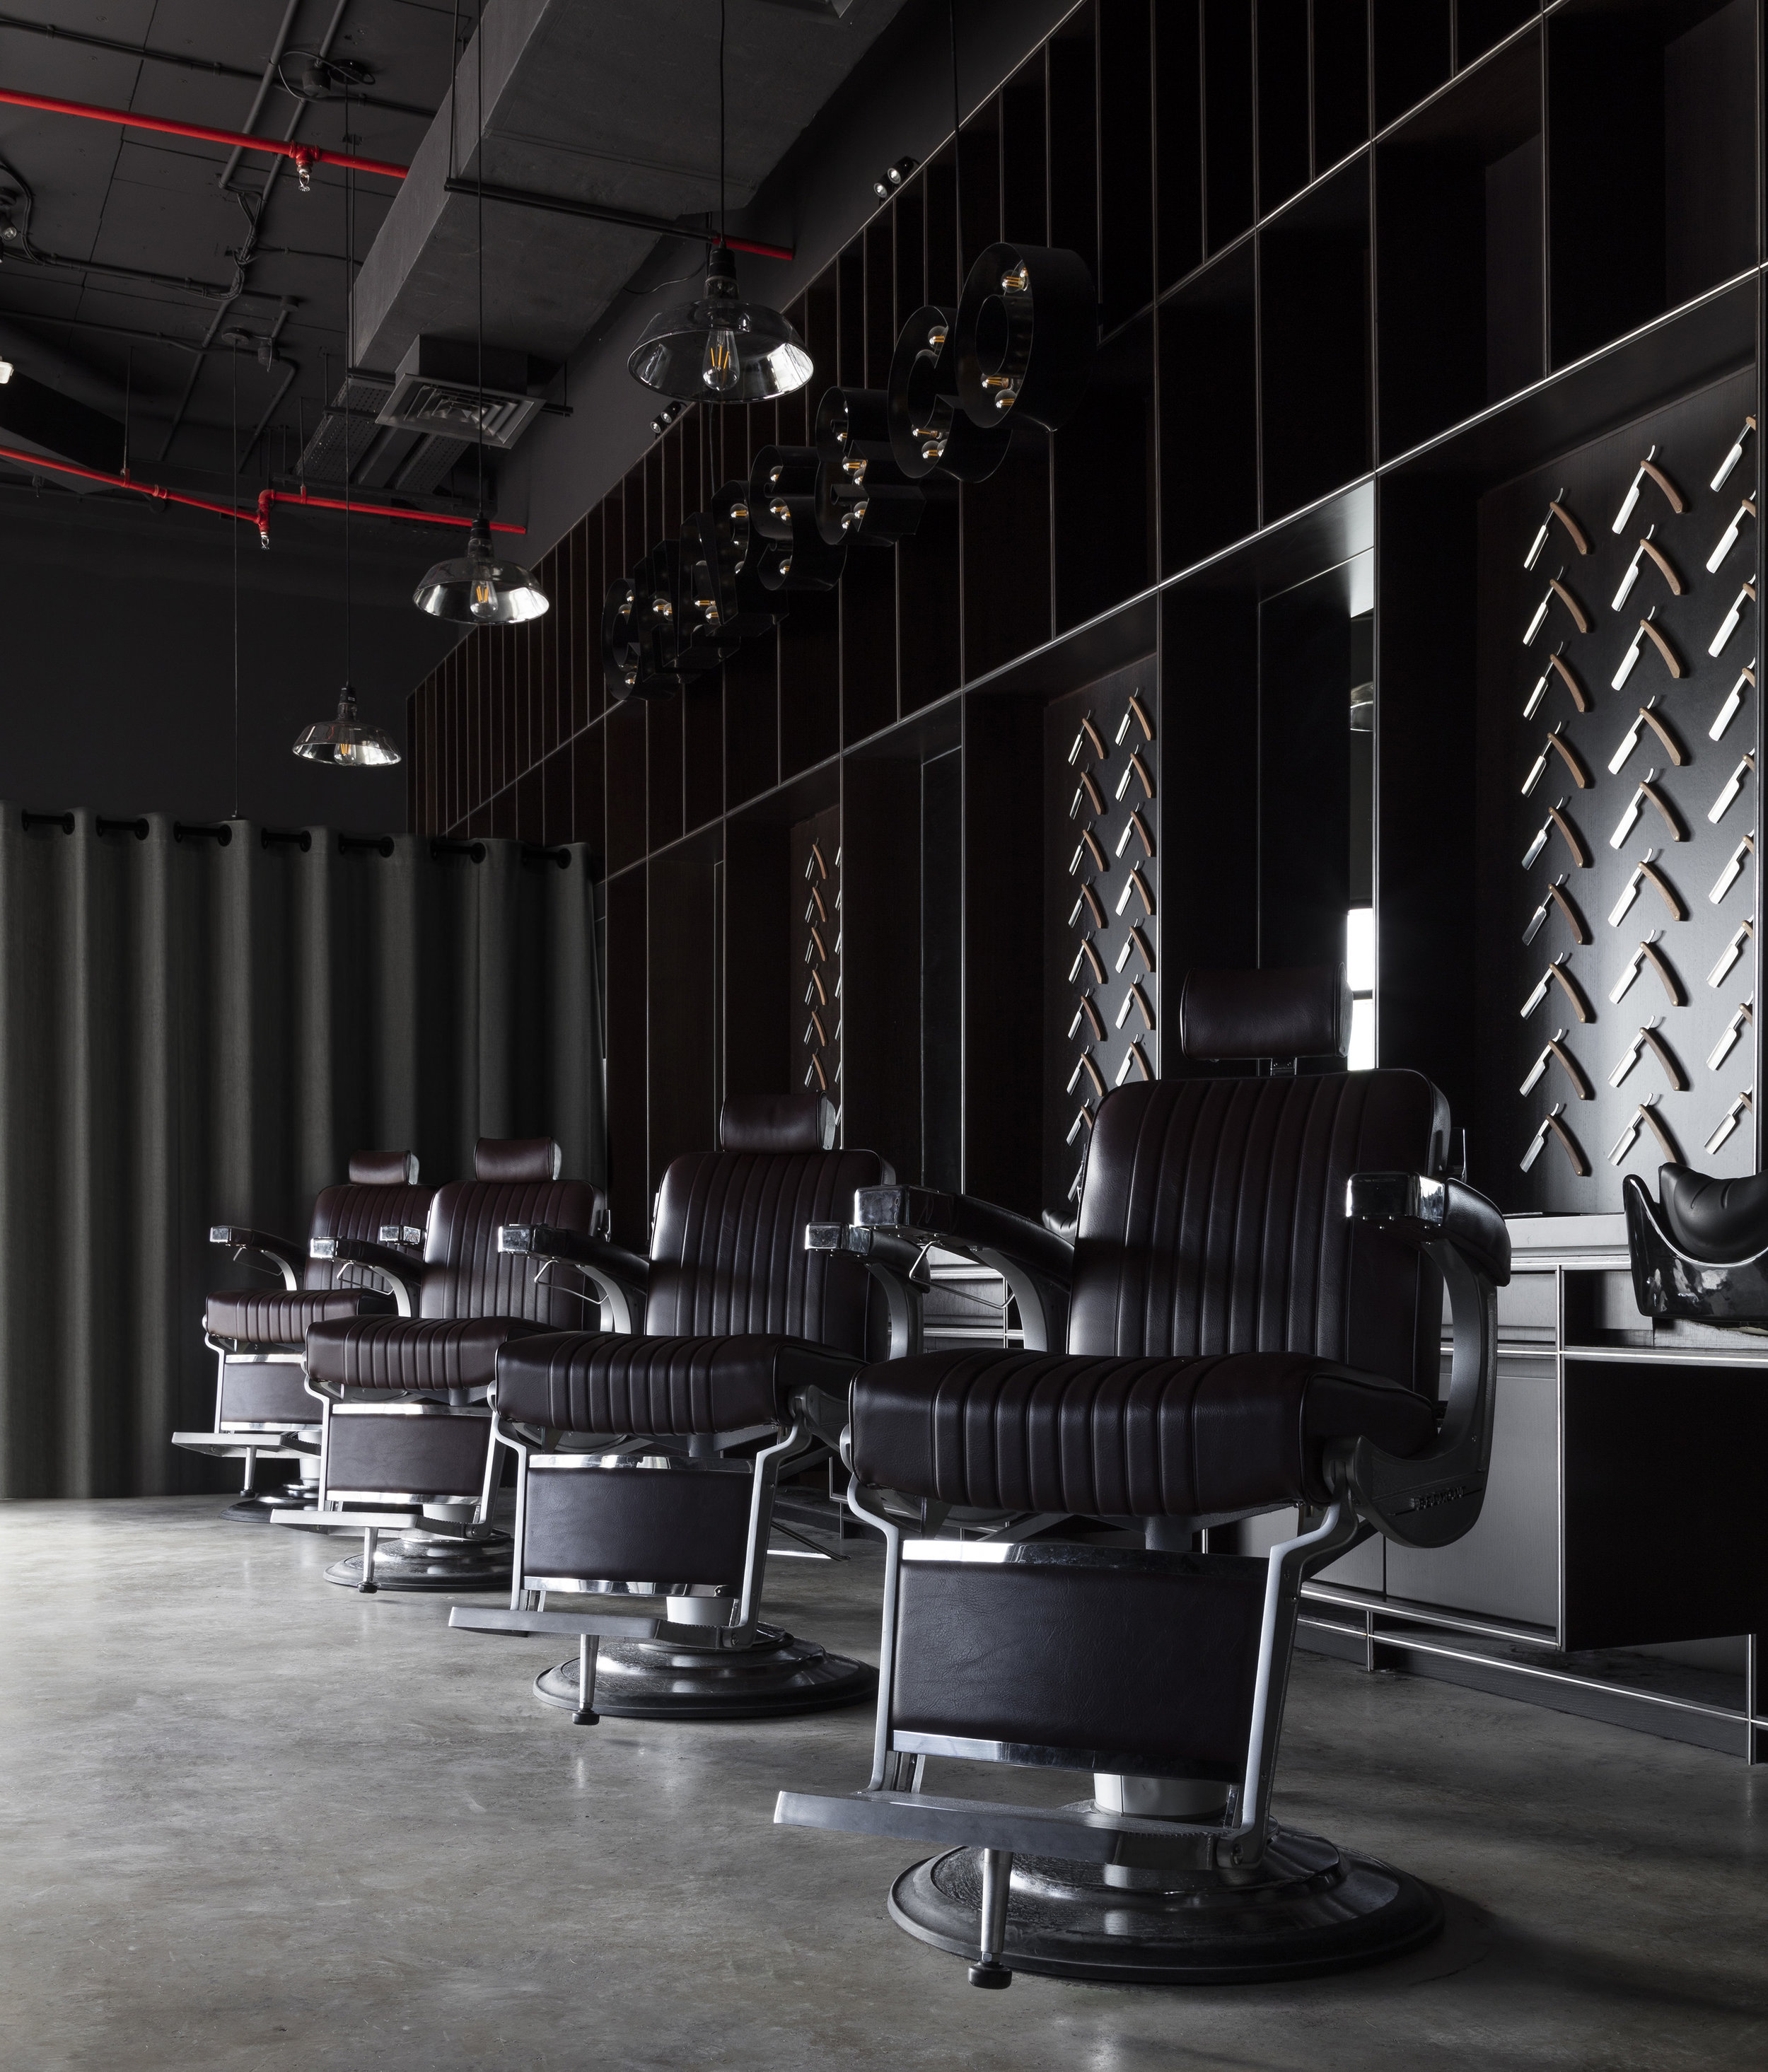 Chaps & Co-JLT-Dubai-Barbershop-Chairs-Brown-Leather-Blades-Joinery-Architect.jpg